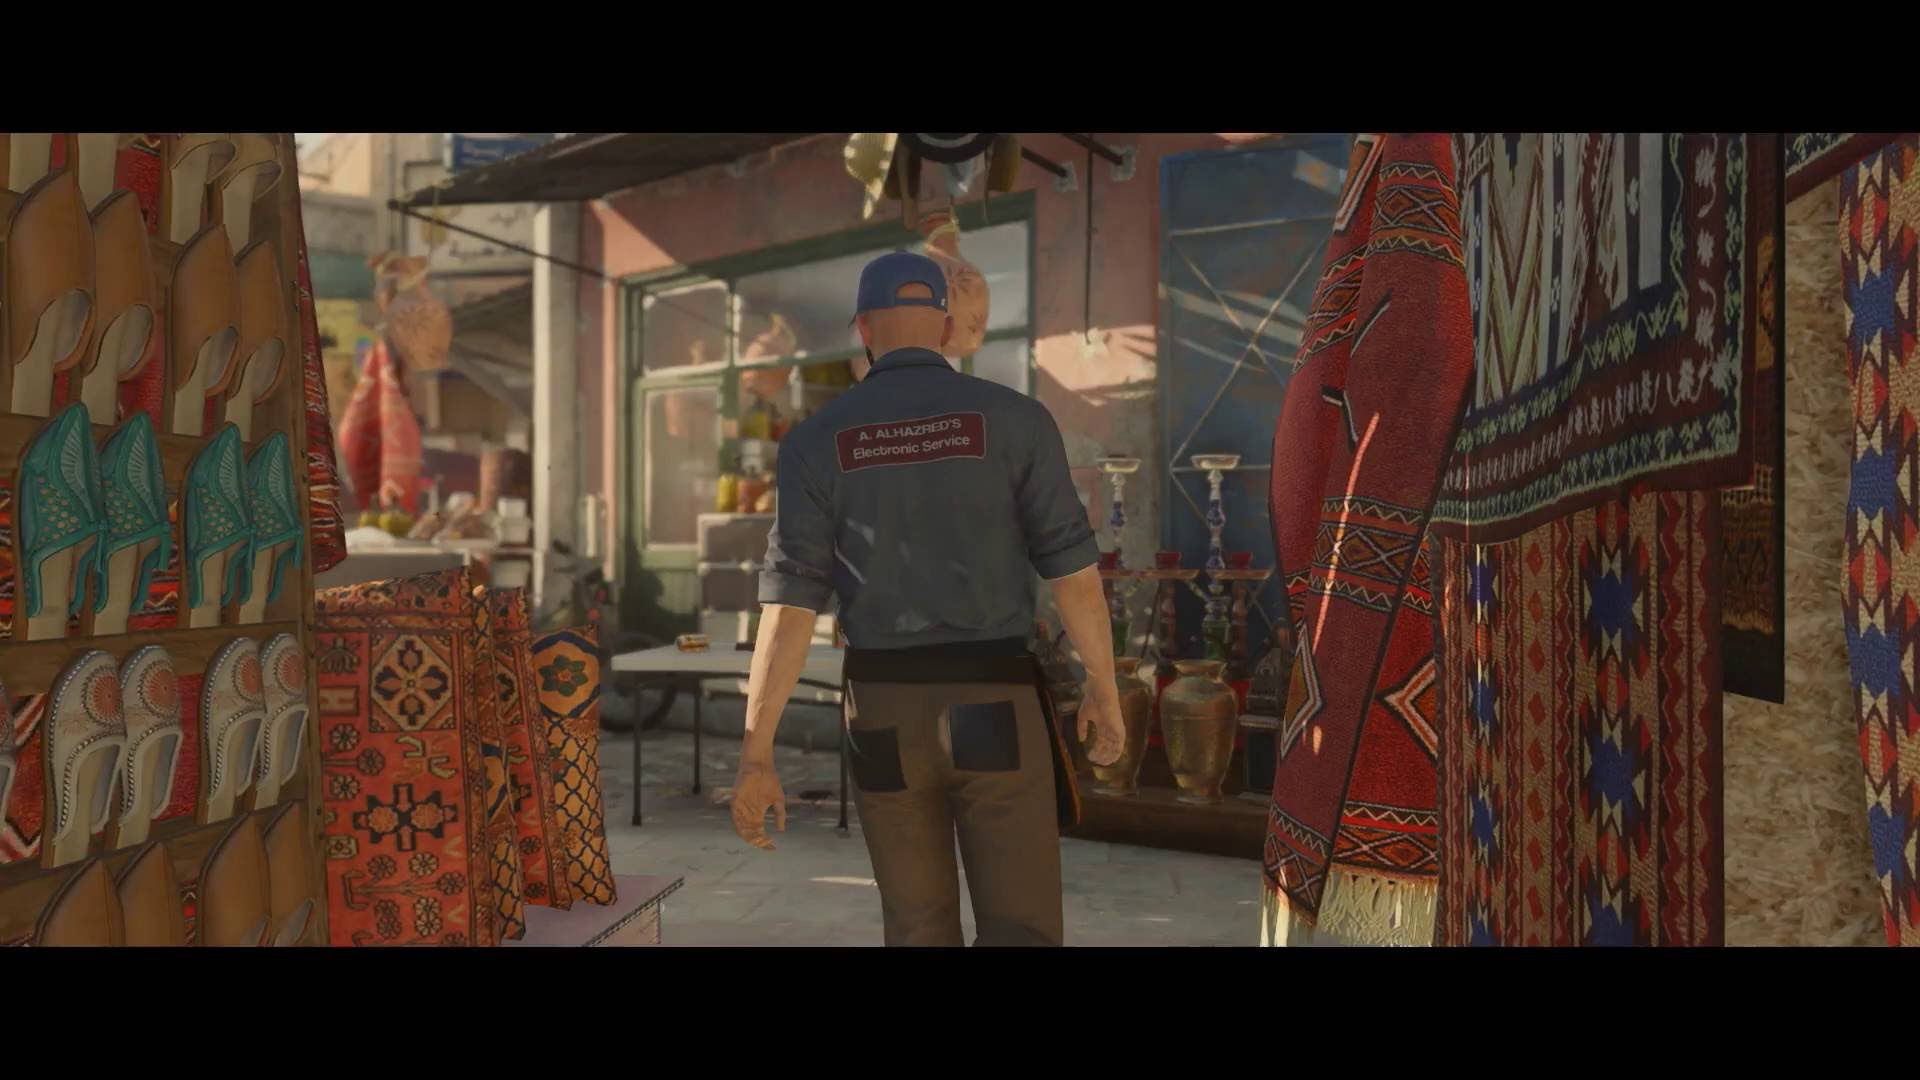 HITMAN Episode 3 | Marrakesh Launch Trailer